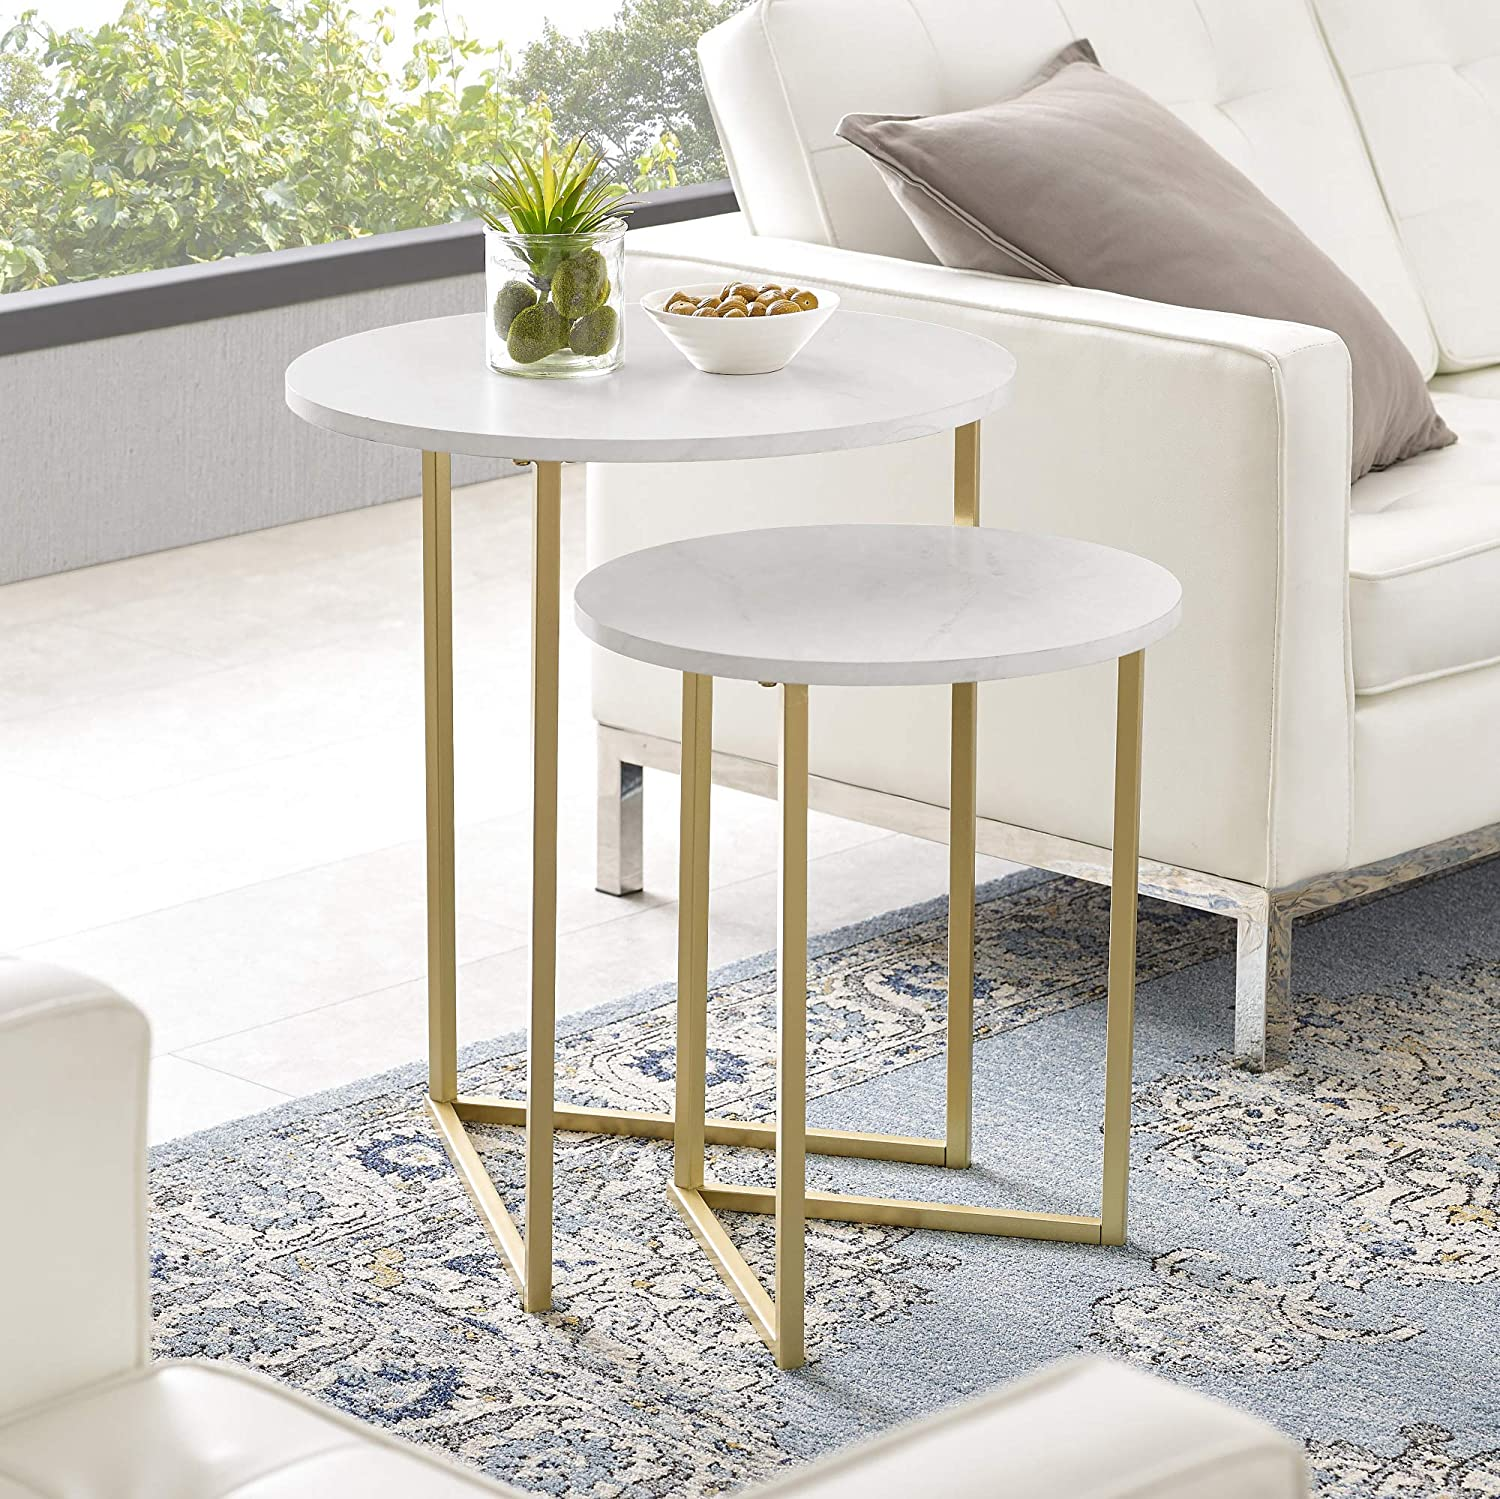 Walker Edison Furniture Company Modern Round Metal Base Nesting Set Side Accent Living Room Storage Small End Table, Set of 2, White Marble/Gold